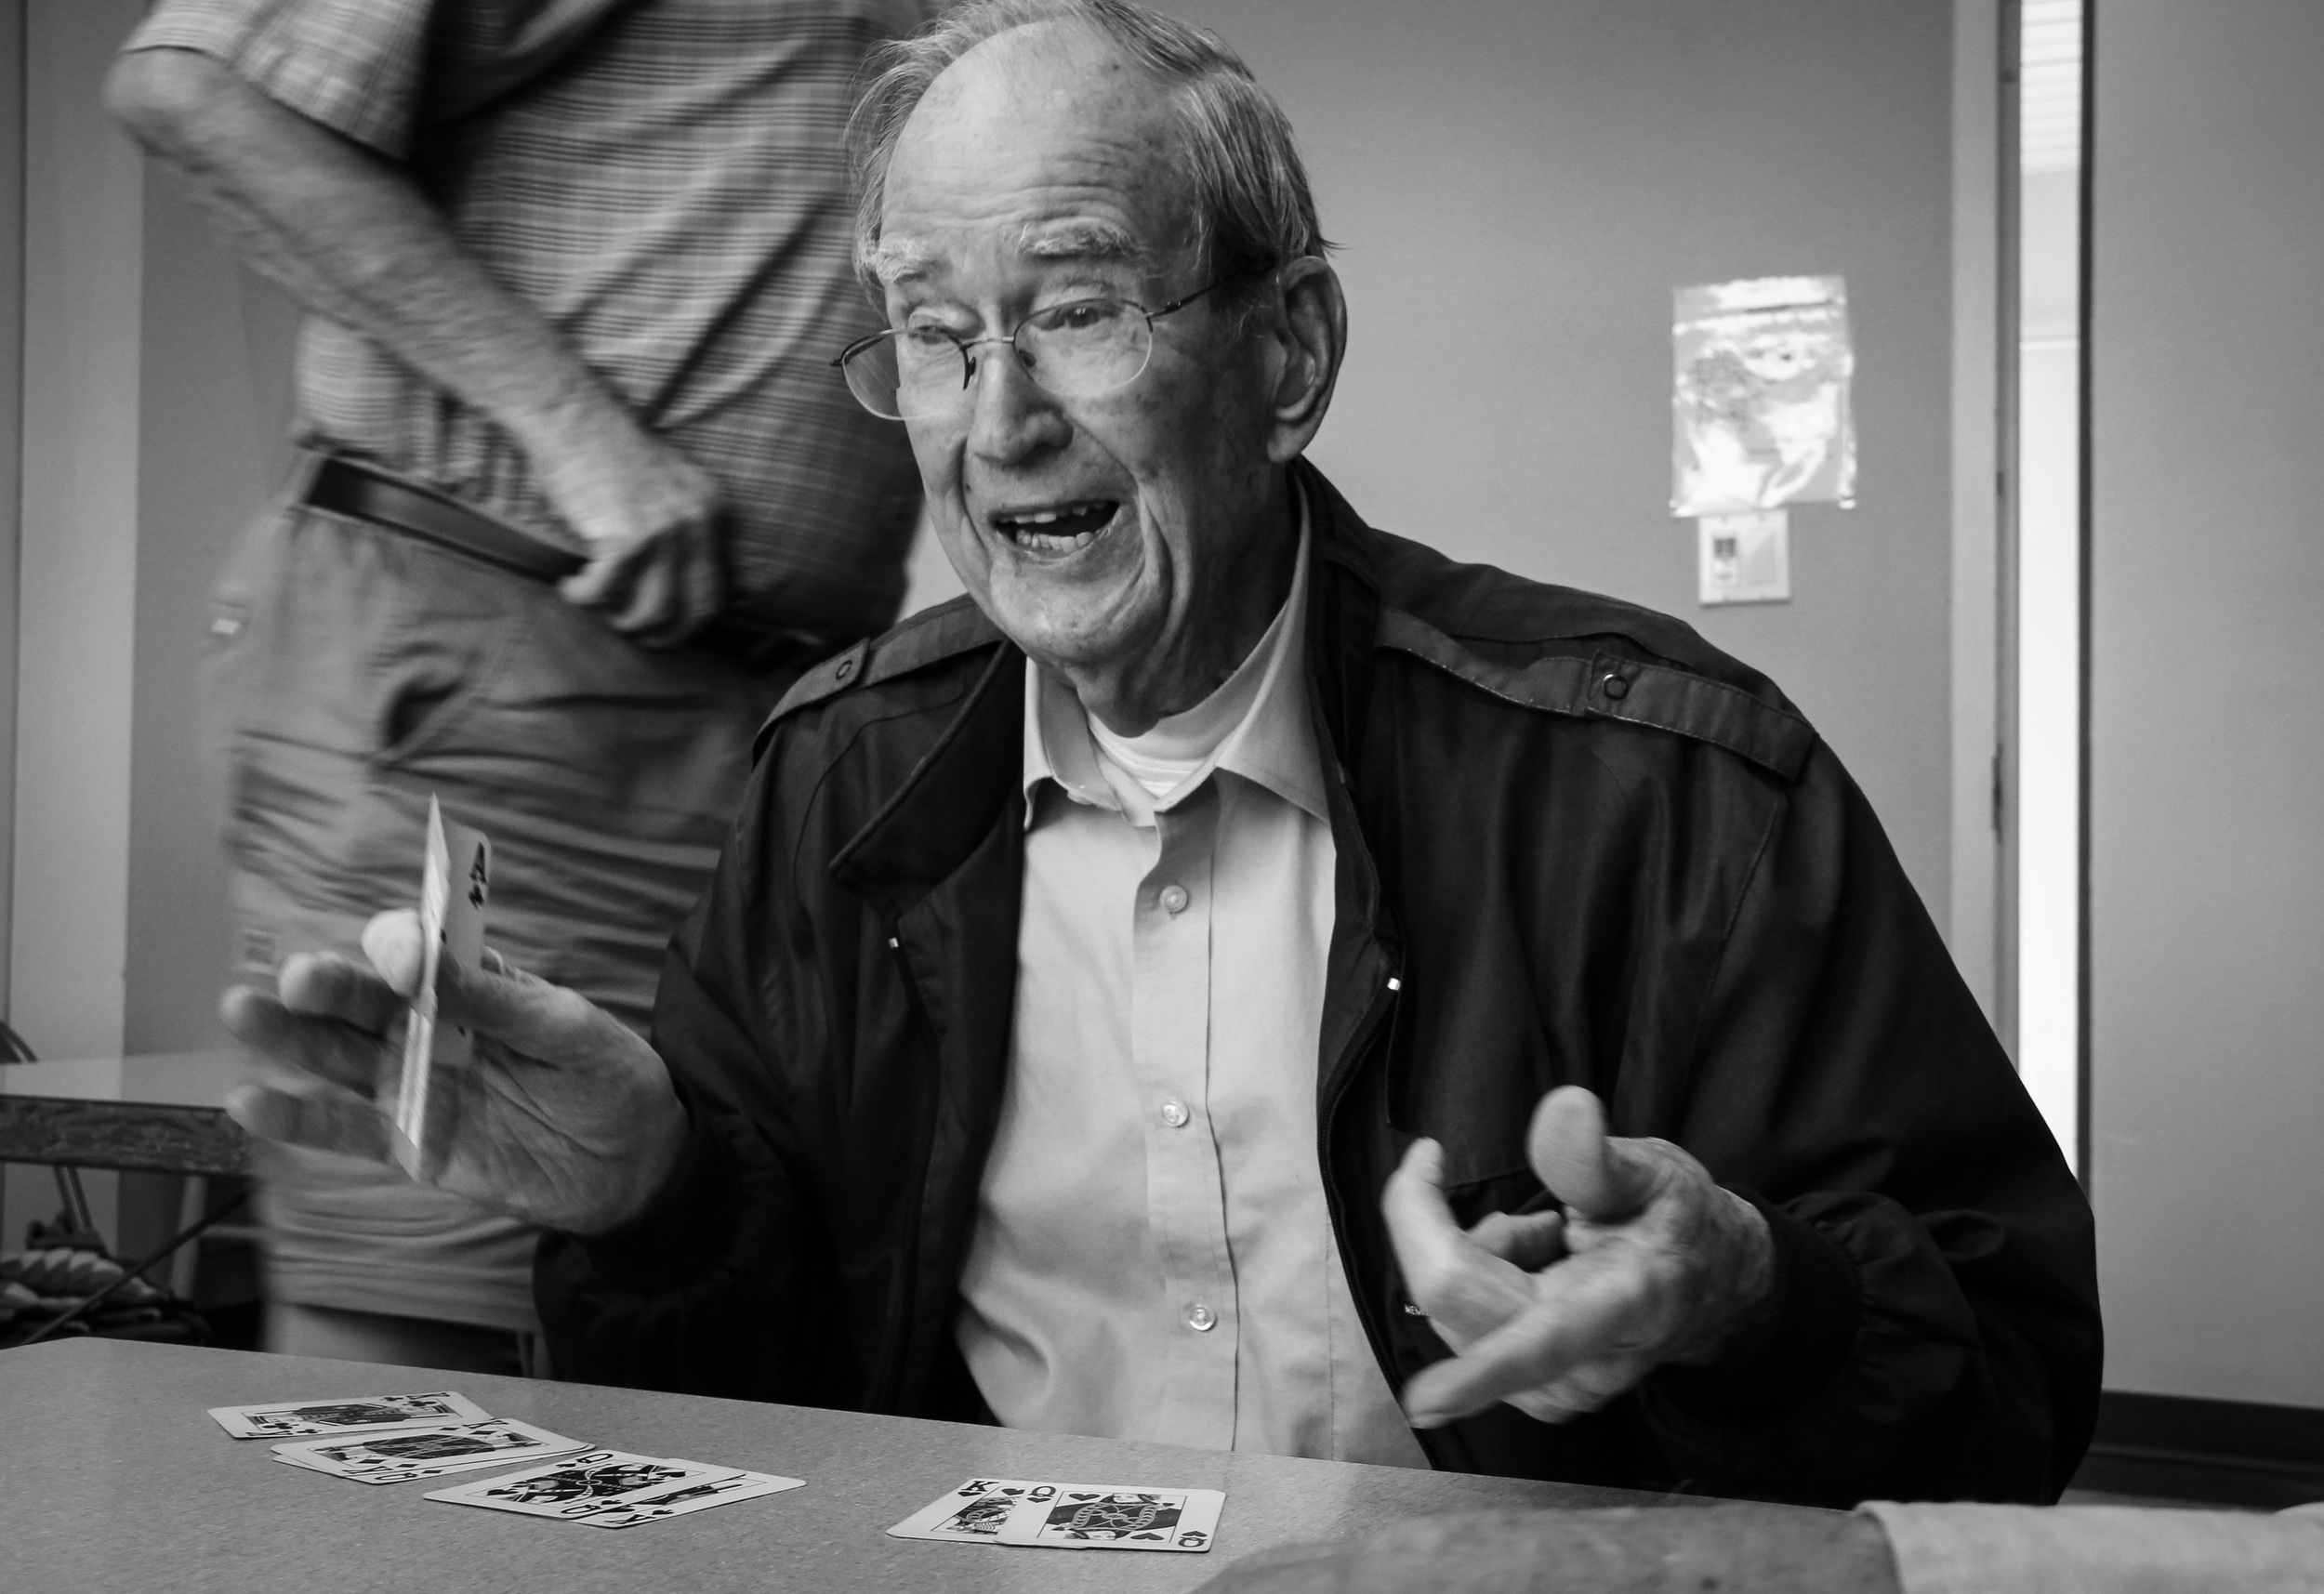 """Ralph Carmichael, 90, laughs during a game of Pinochle at the senior center. He taught a class about computers at the center for 12 years and now enjoys playing cards with his friends. """"This game keeps our minds going,"""" Carmichael said. Keeping an active mind and lifestyle is a theme throughout the center, but mostly they come to just enjoy the the last years of their life with each other."""